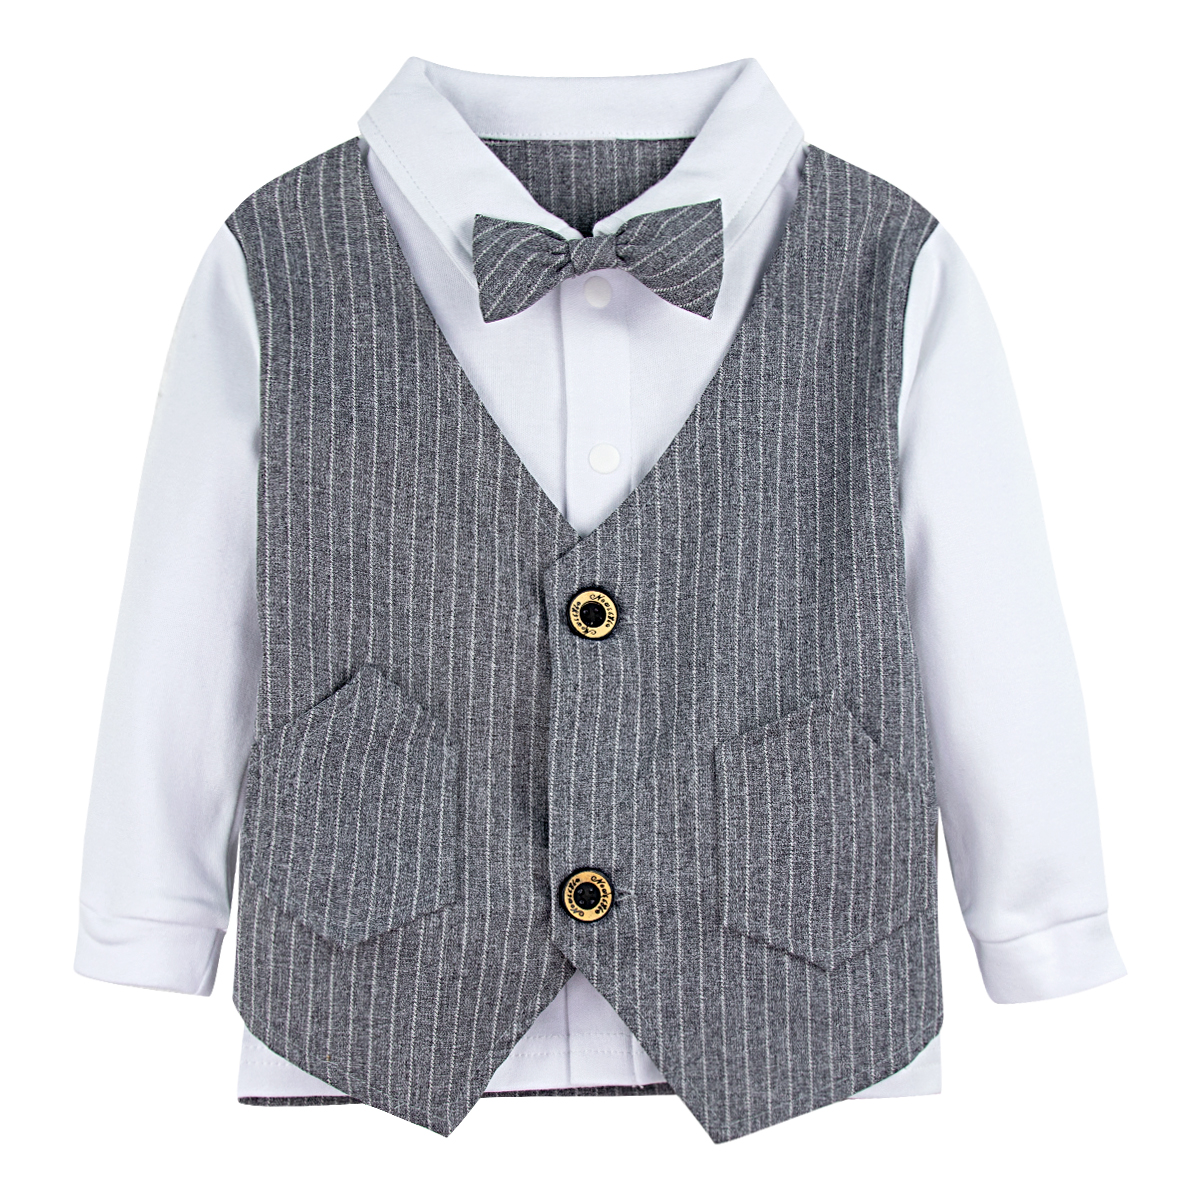 Baby Boy Dress Clothes Toddler Gentleman Outfits Tuxedo Formal Suits 3PCS Set